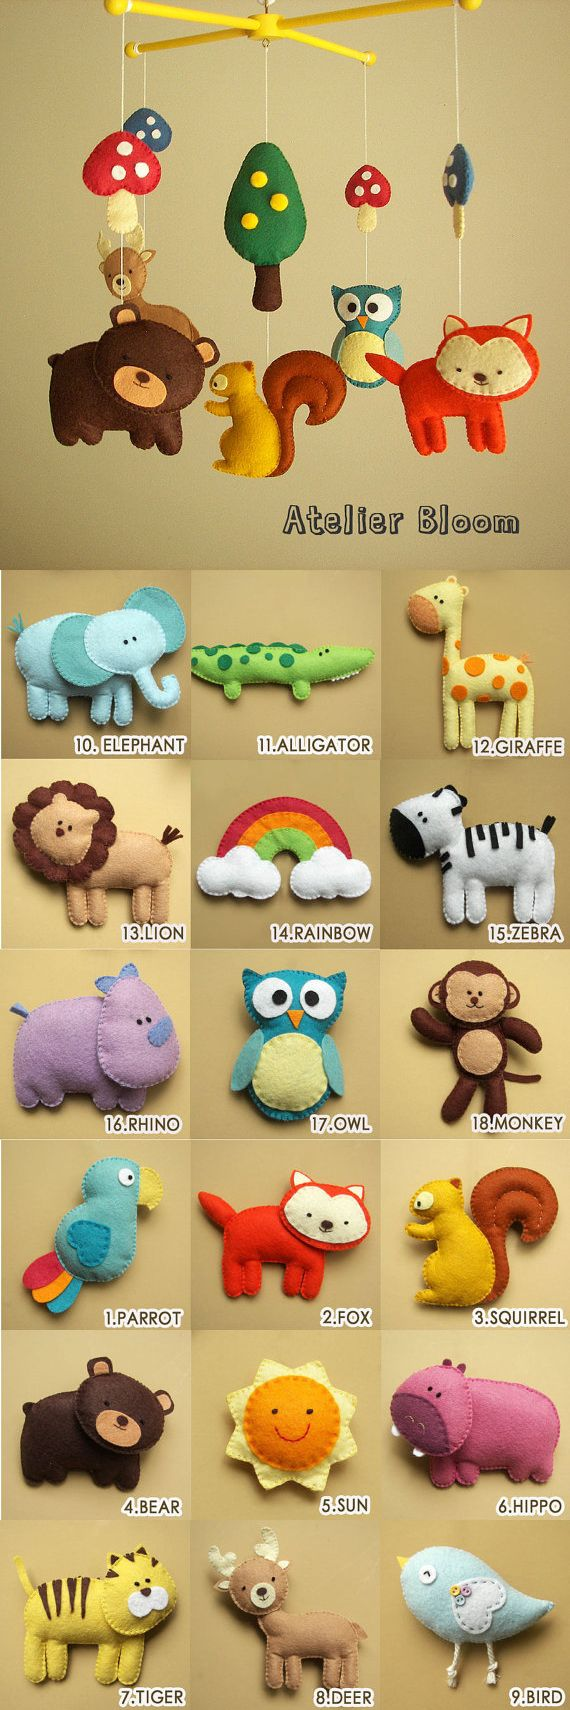 Felt Animal Ideas. #diy #crafts www.BlueRainbowDesign.com